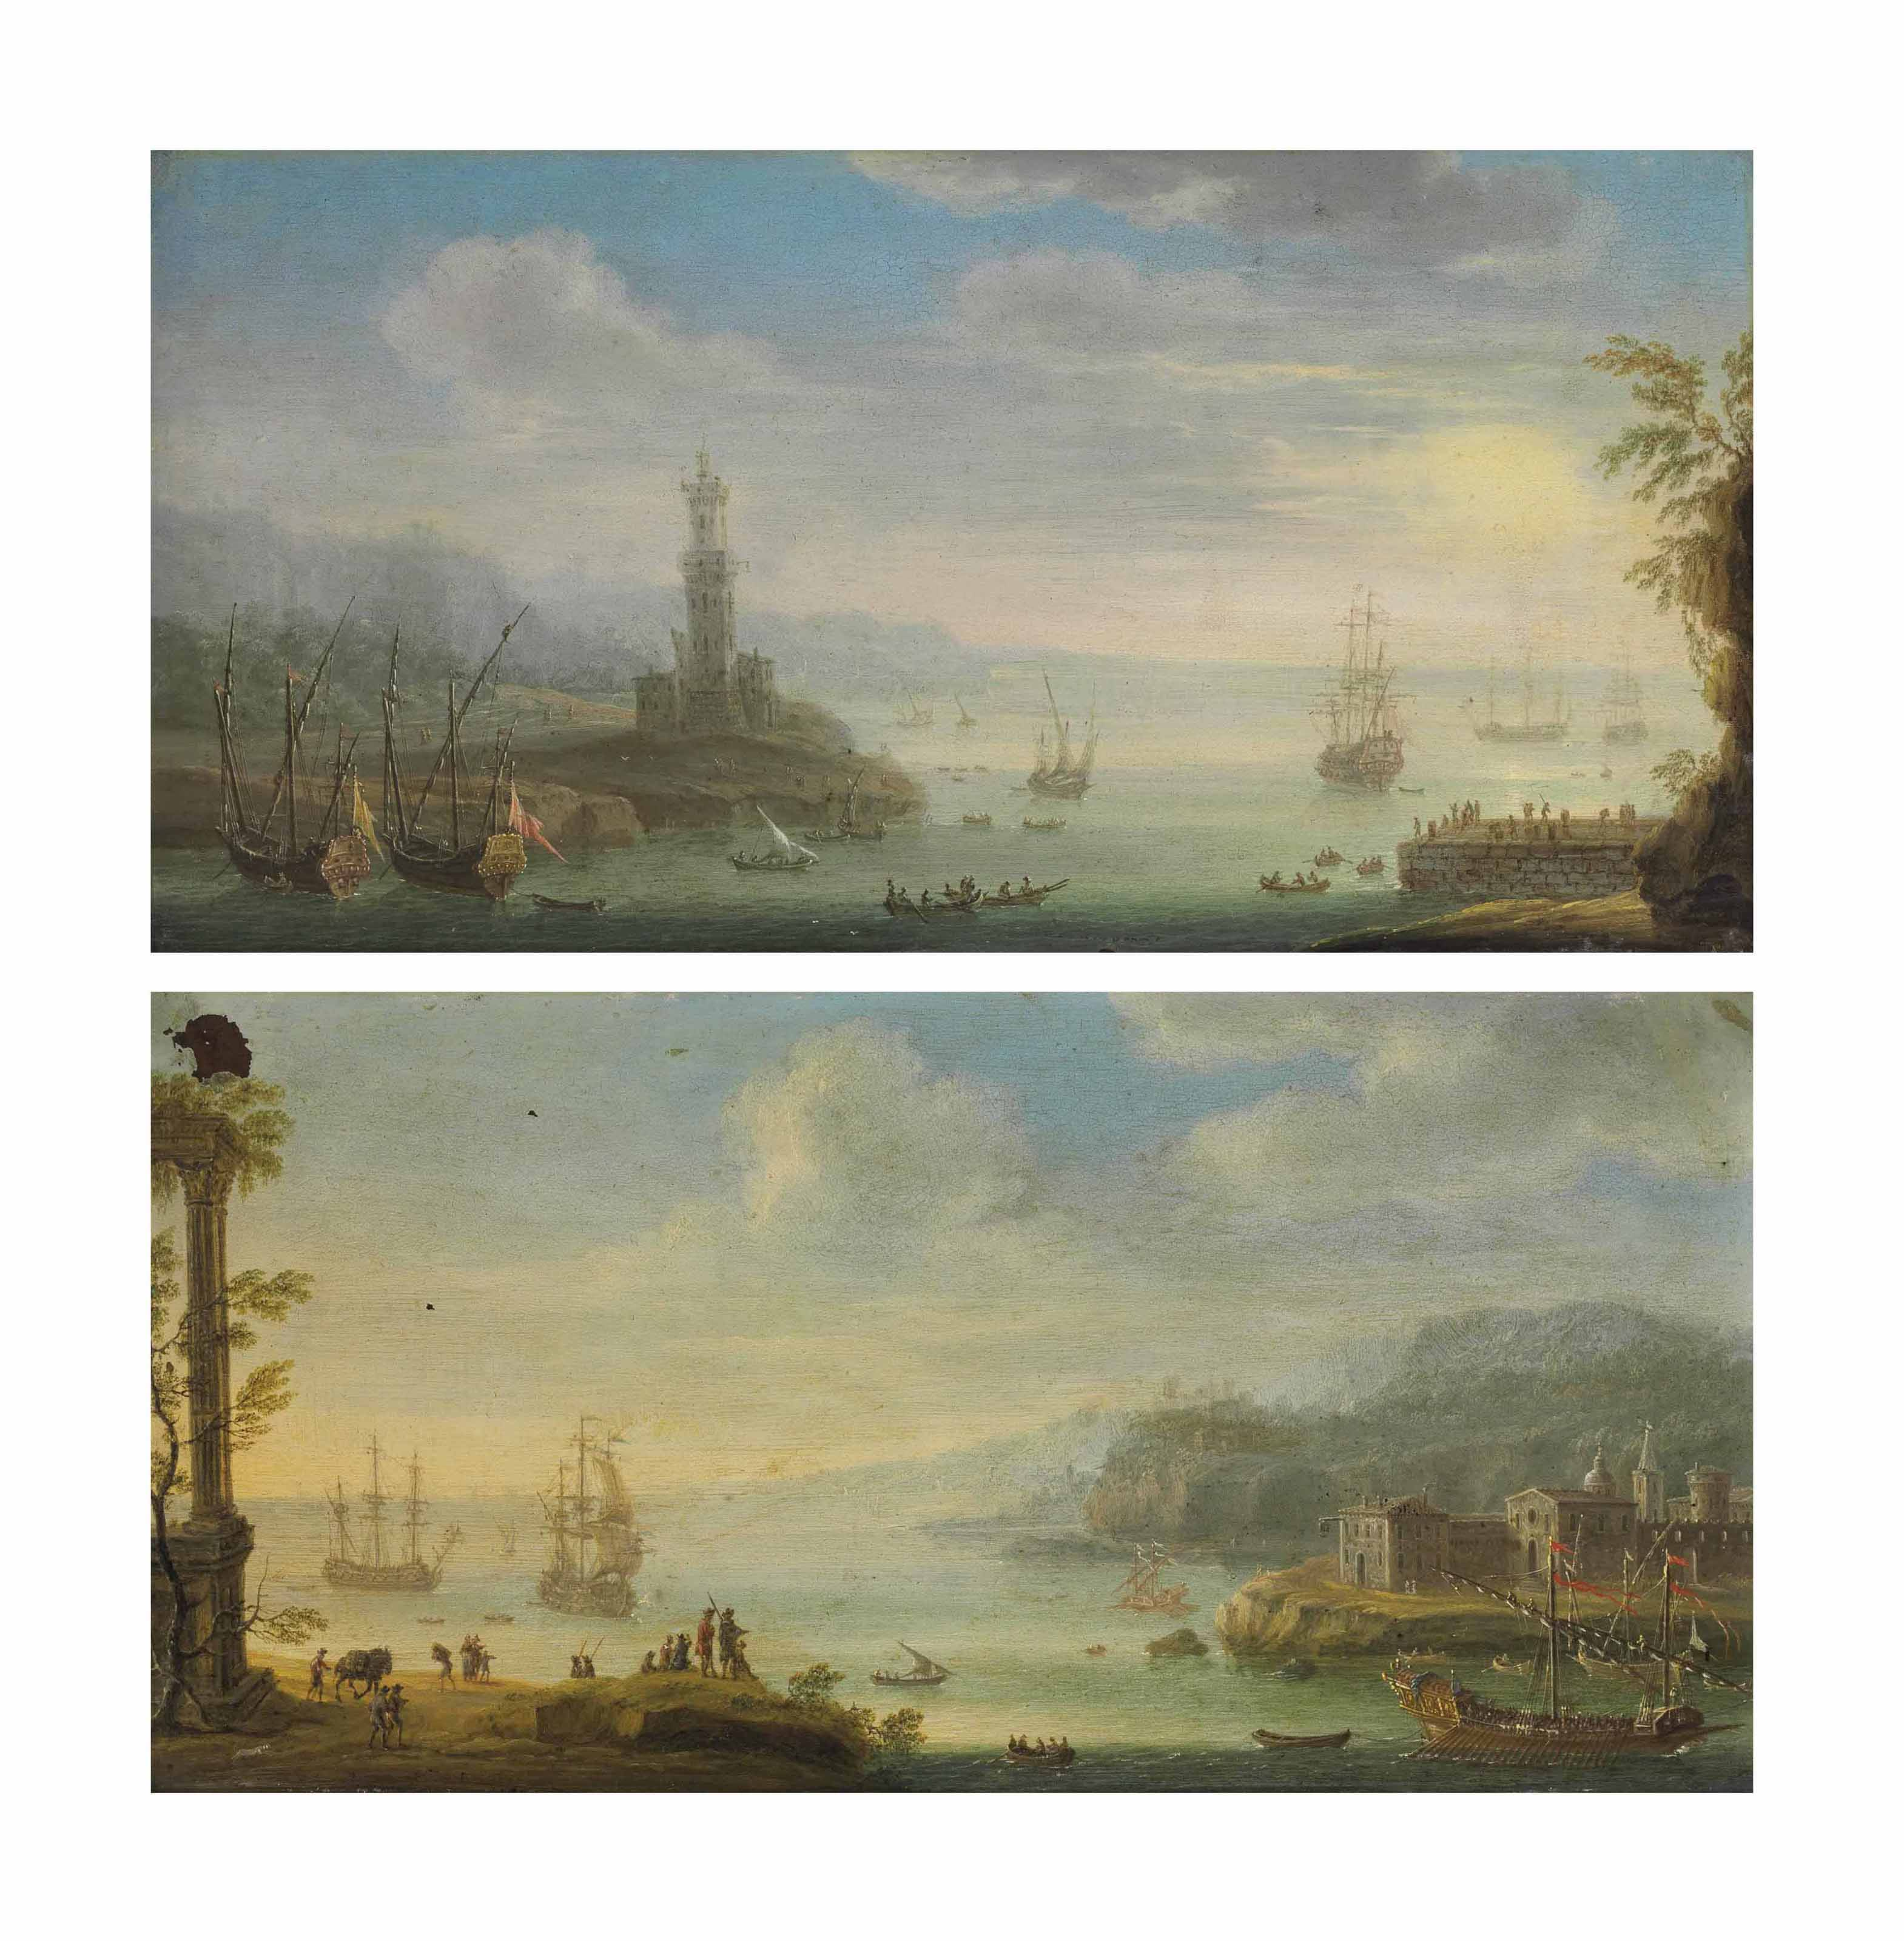 An Italianate harbor with a barge, men-o'-war and other shipping, a walled town beyond; and An Italianate harbor with men-o'-war and other shipping